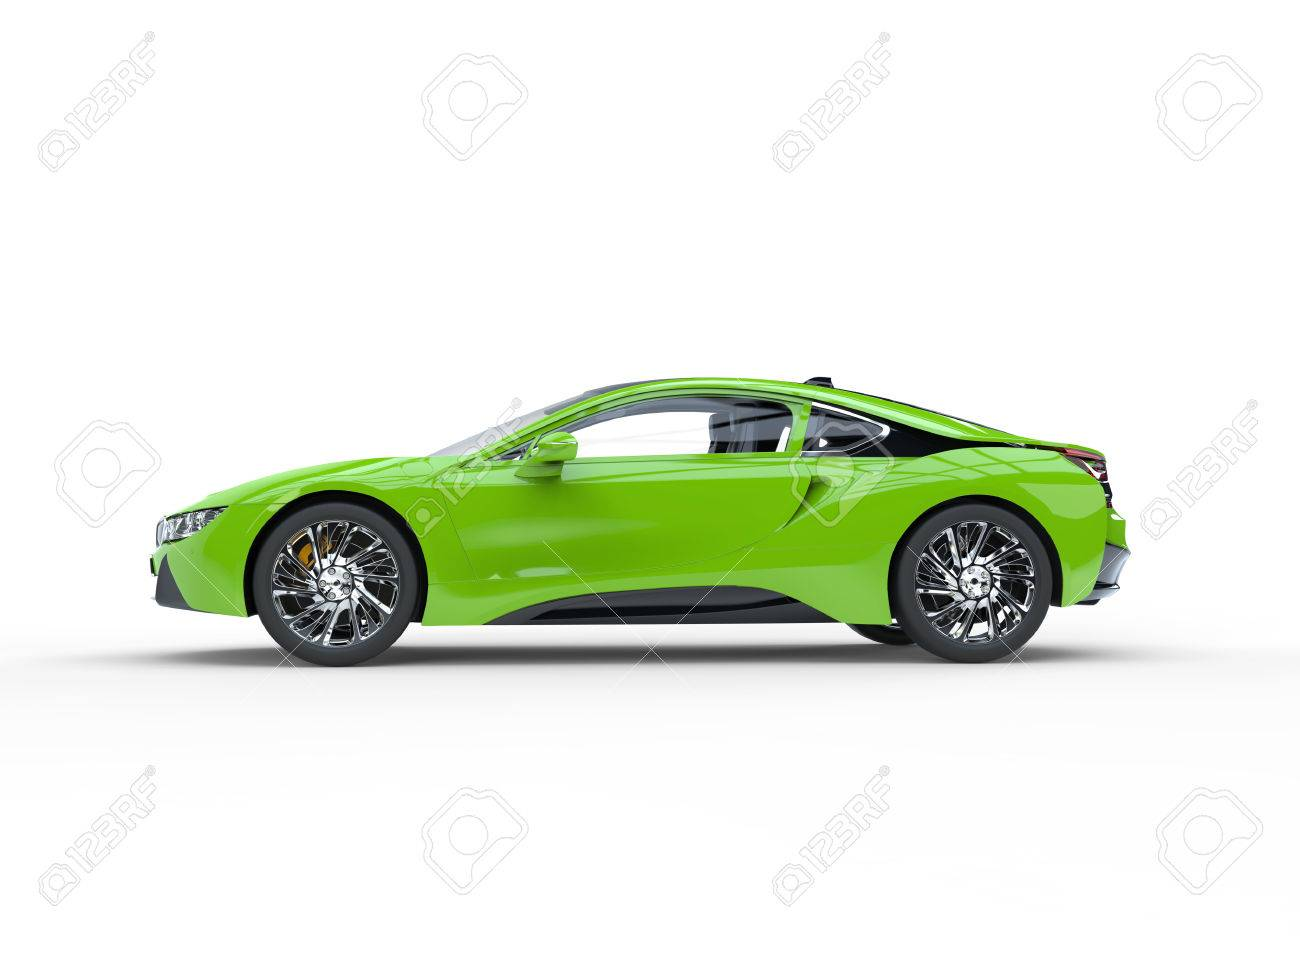 Modern Green Sports Car   Side View   Isolated On White Background. Stock  Photo